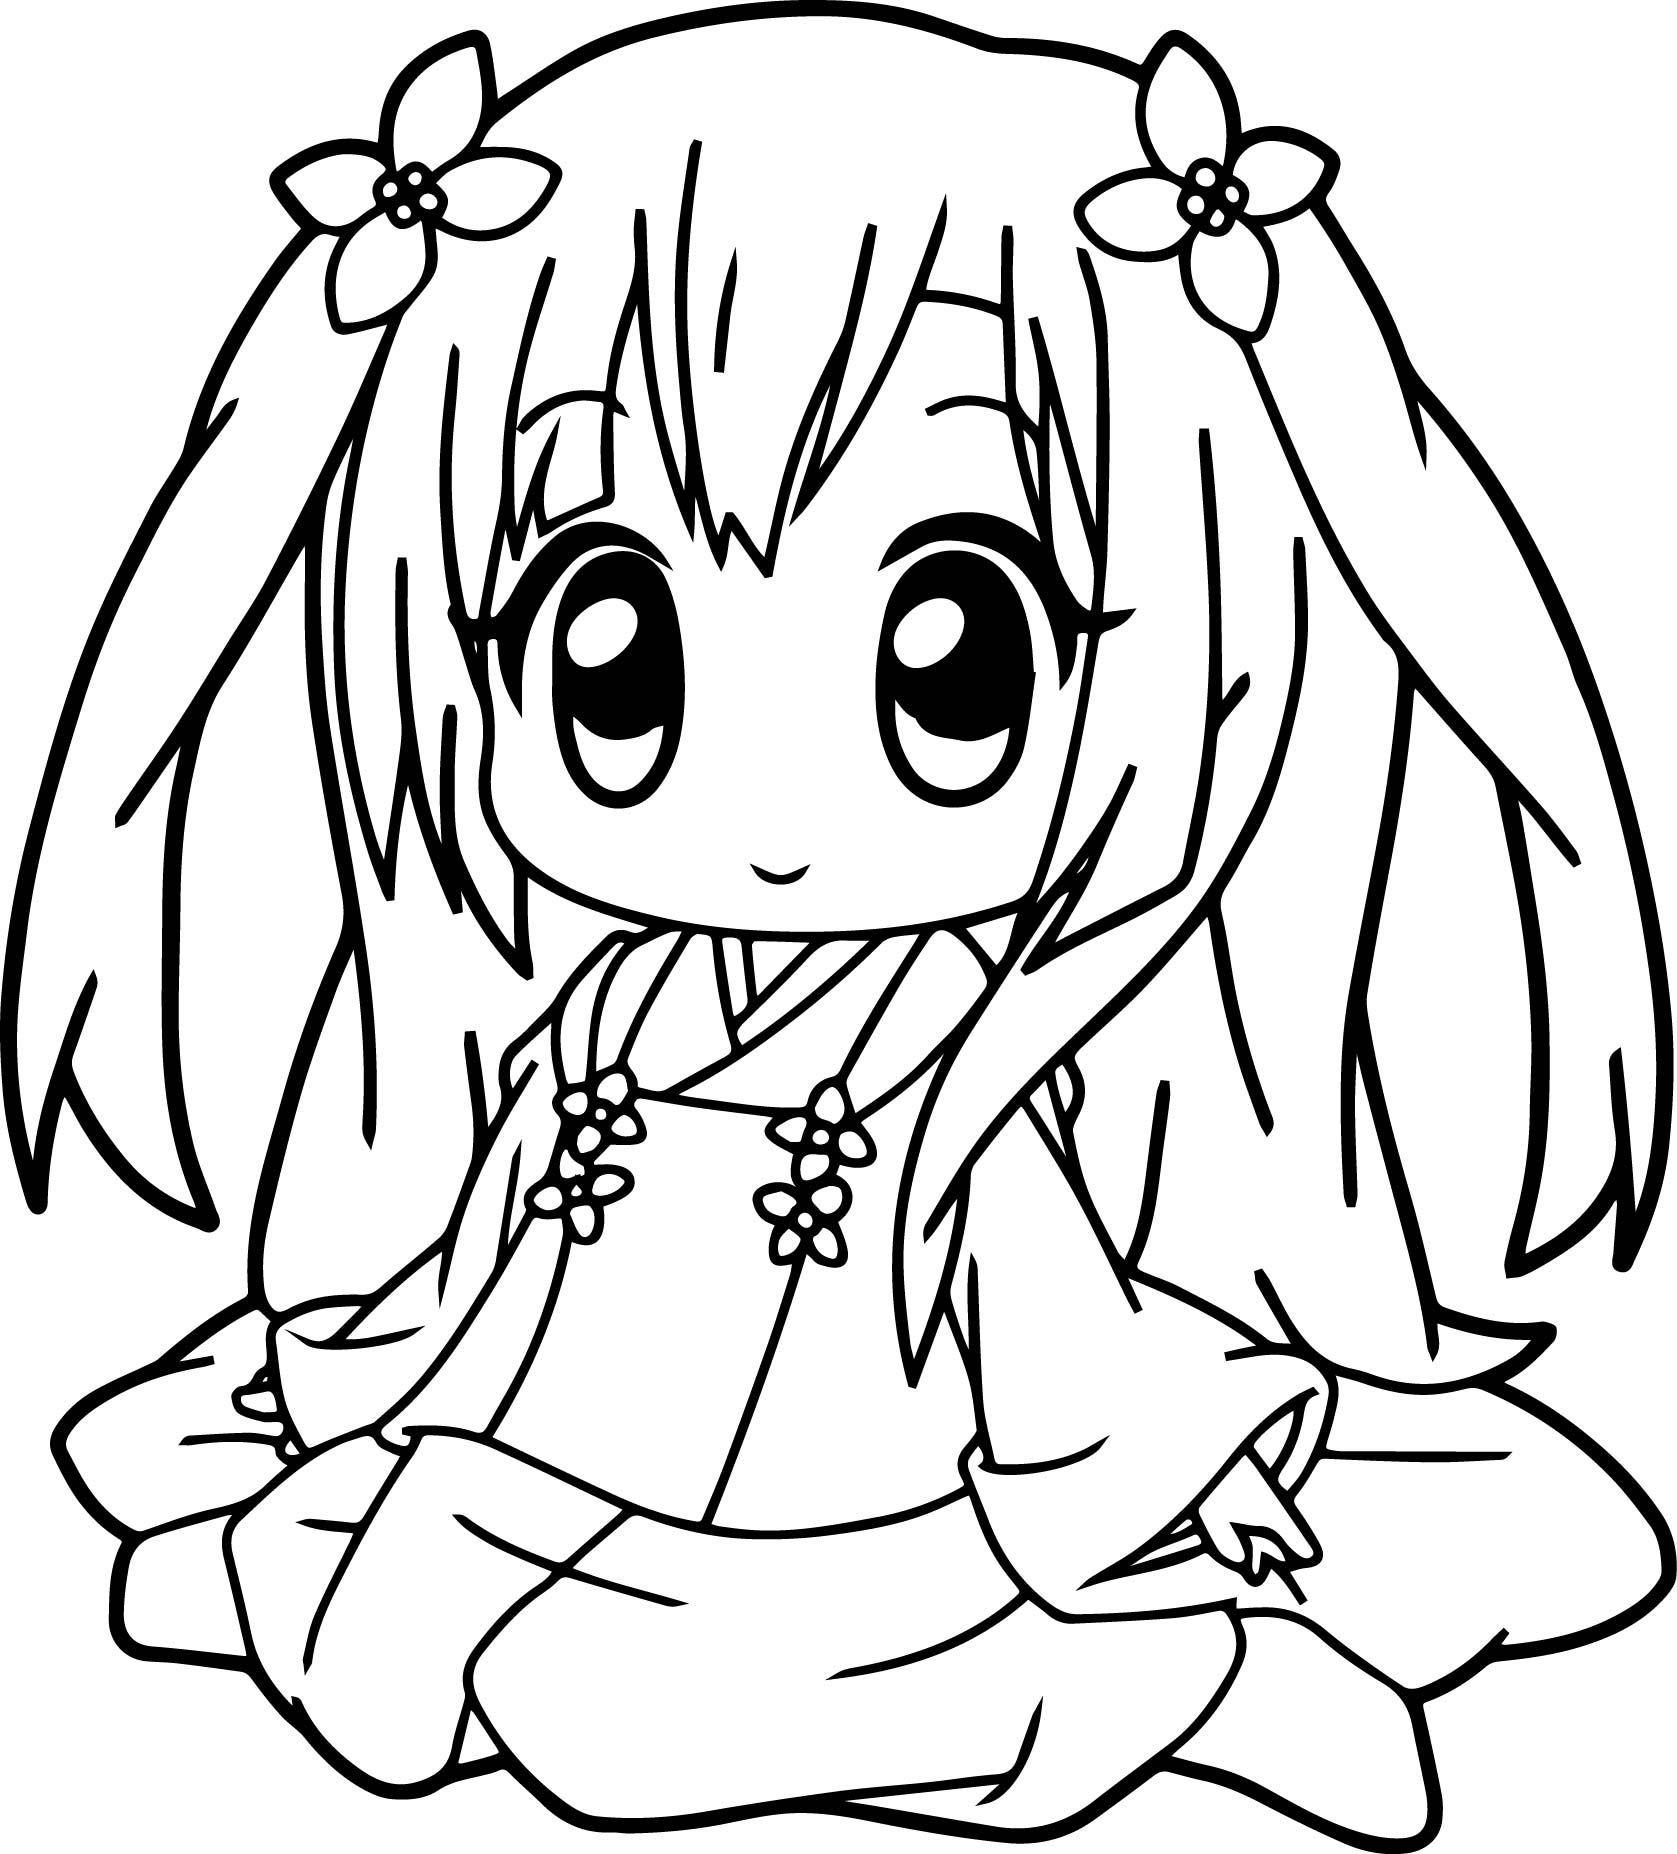 coloring pages anime no color anime coloring pages best coloring pages for kids no coloring anime color pages